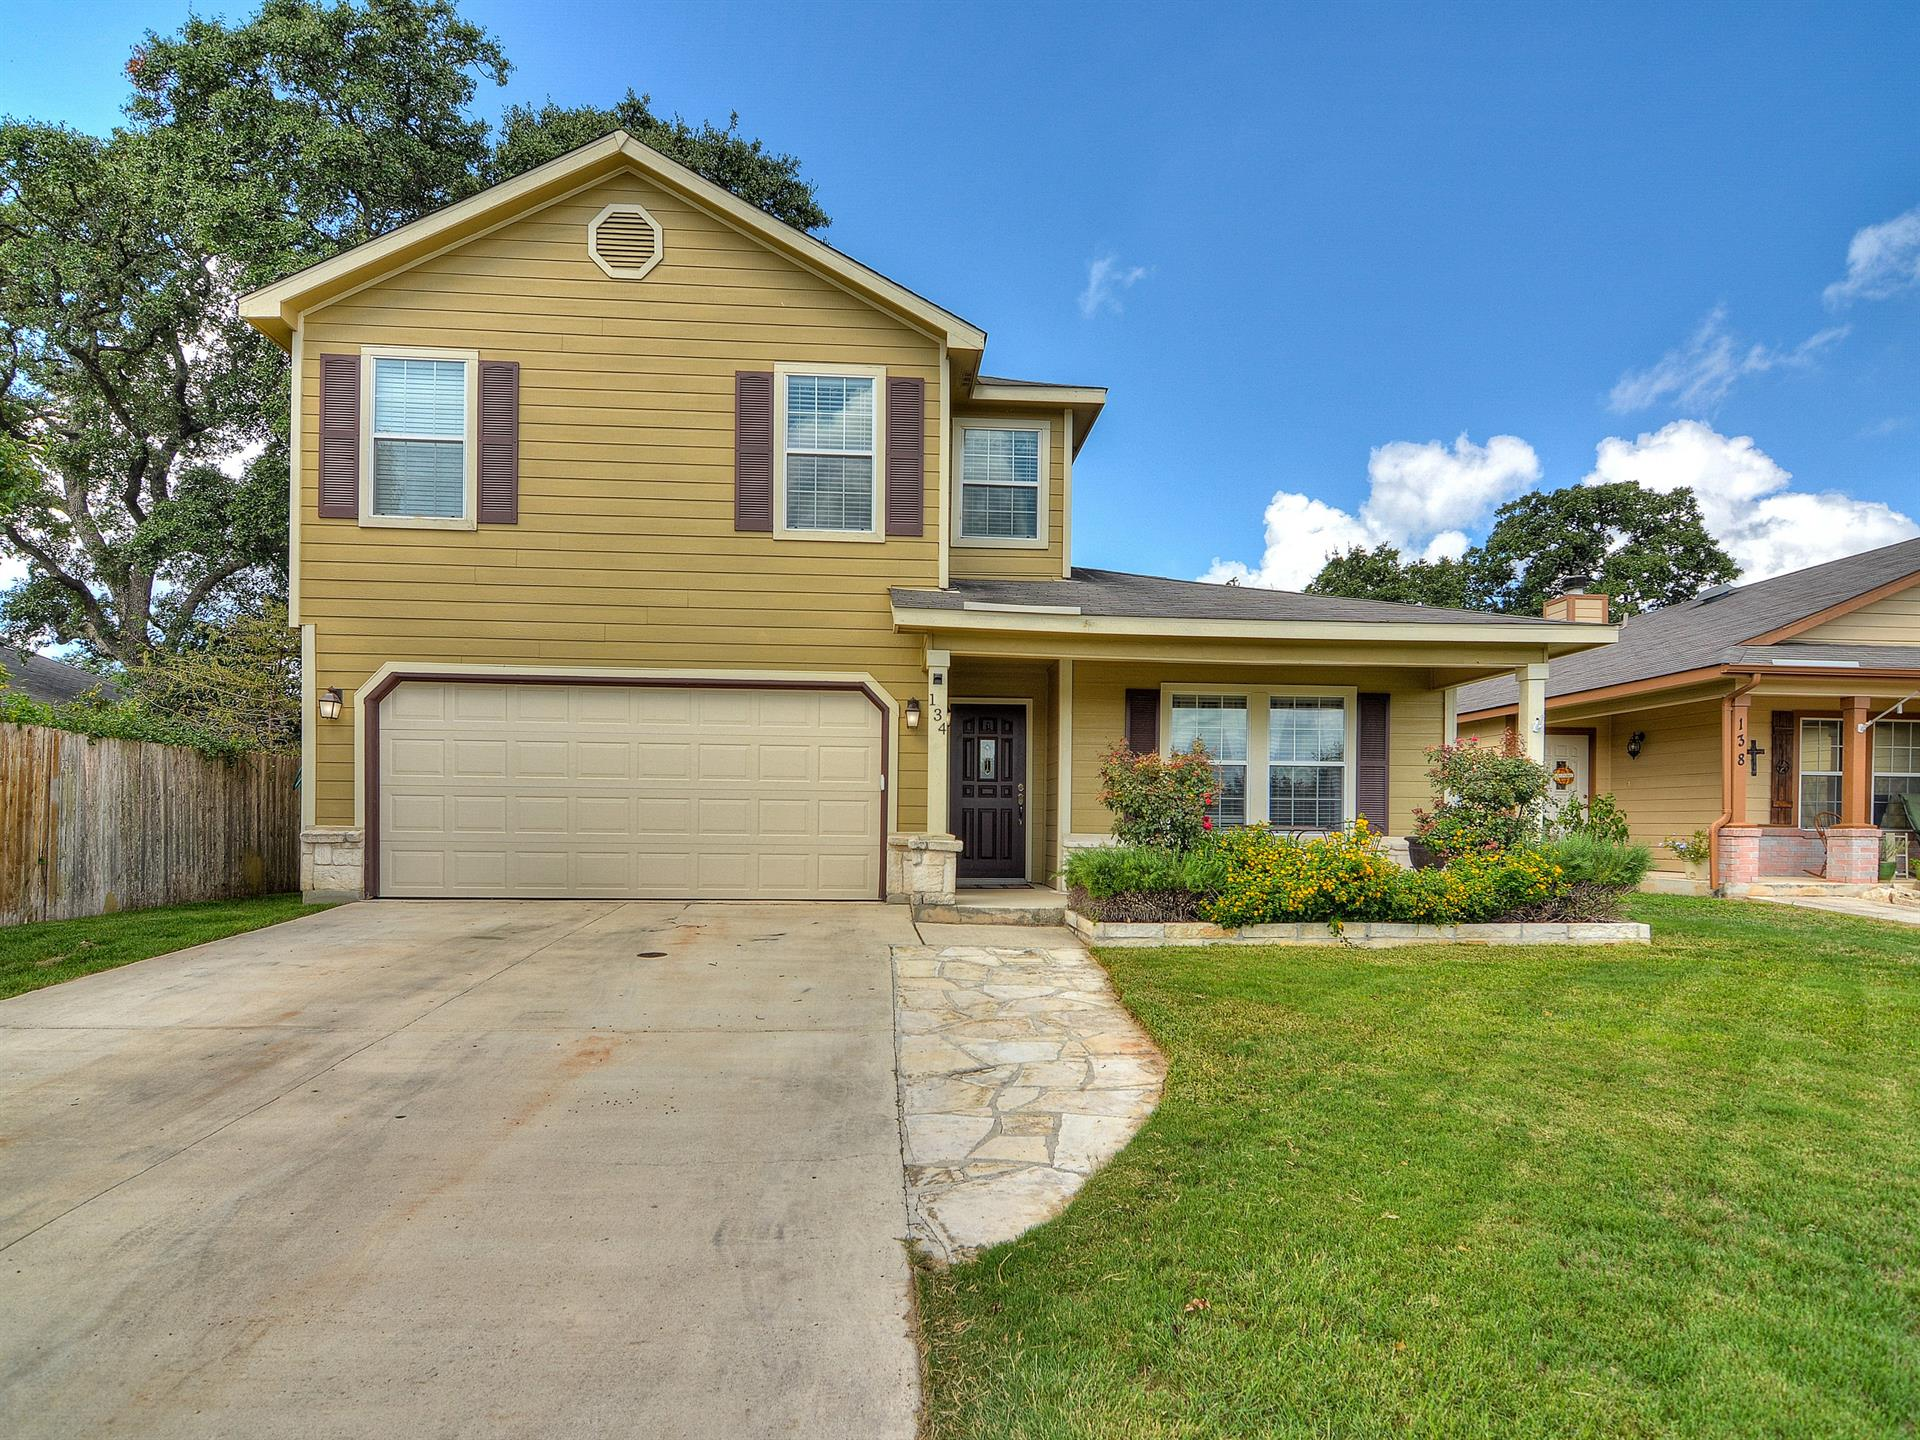 Residential for Sale at 134 Jordan Place 134 Jordan Place Boerne, Texas 78006 United States